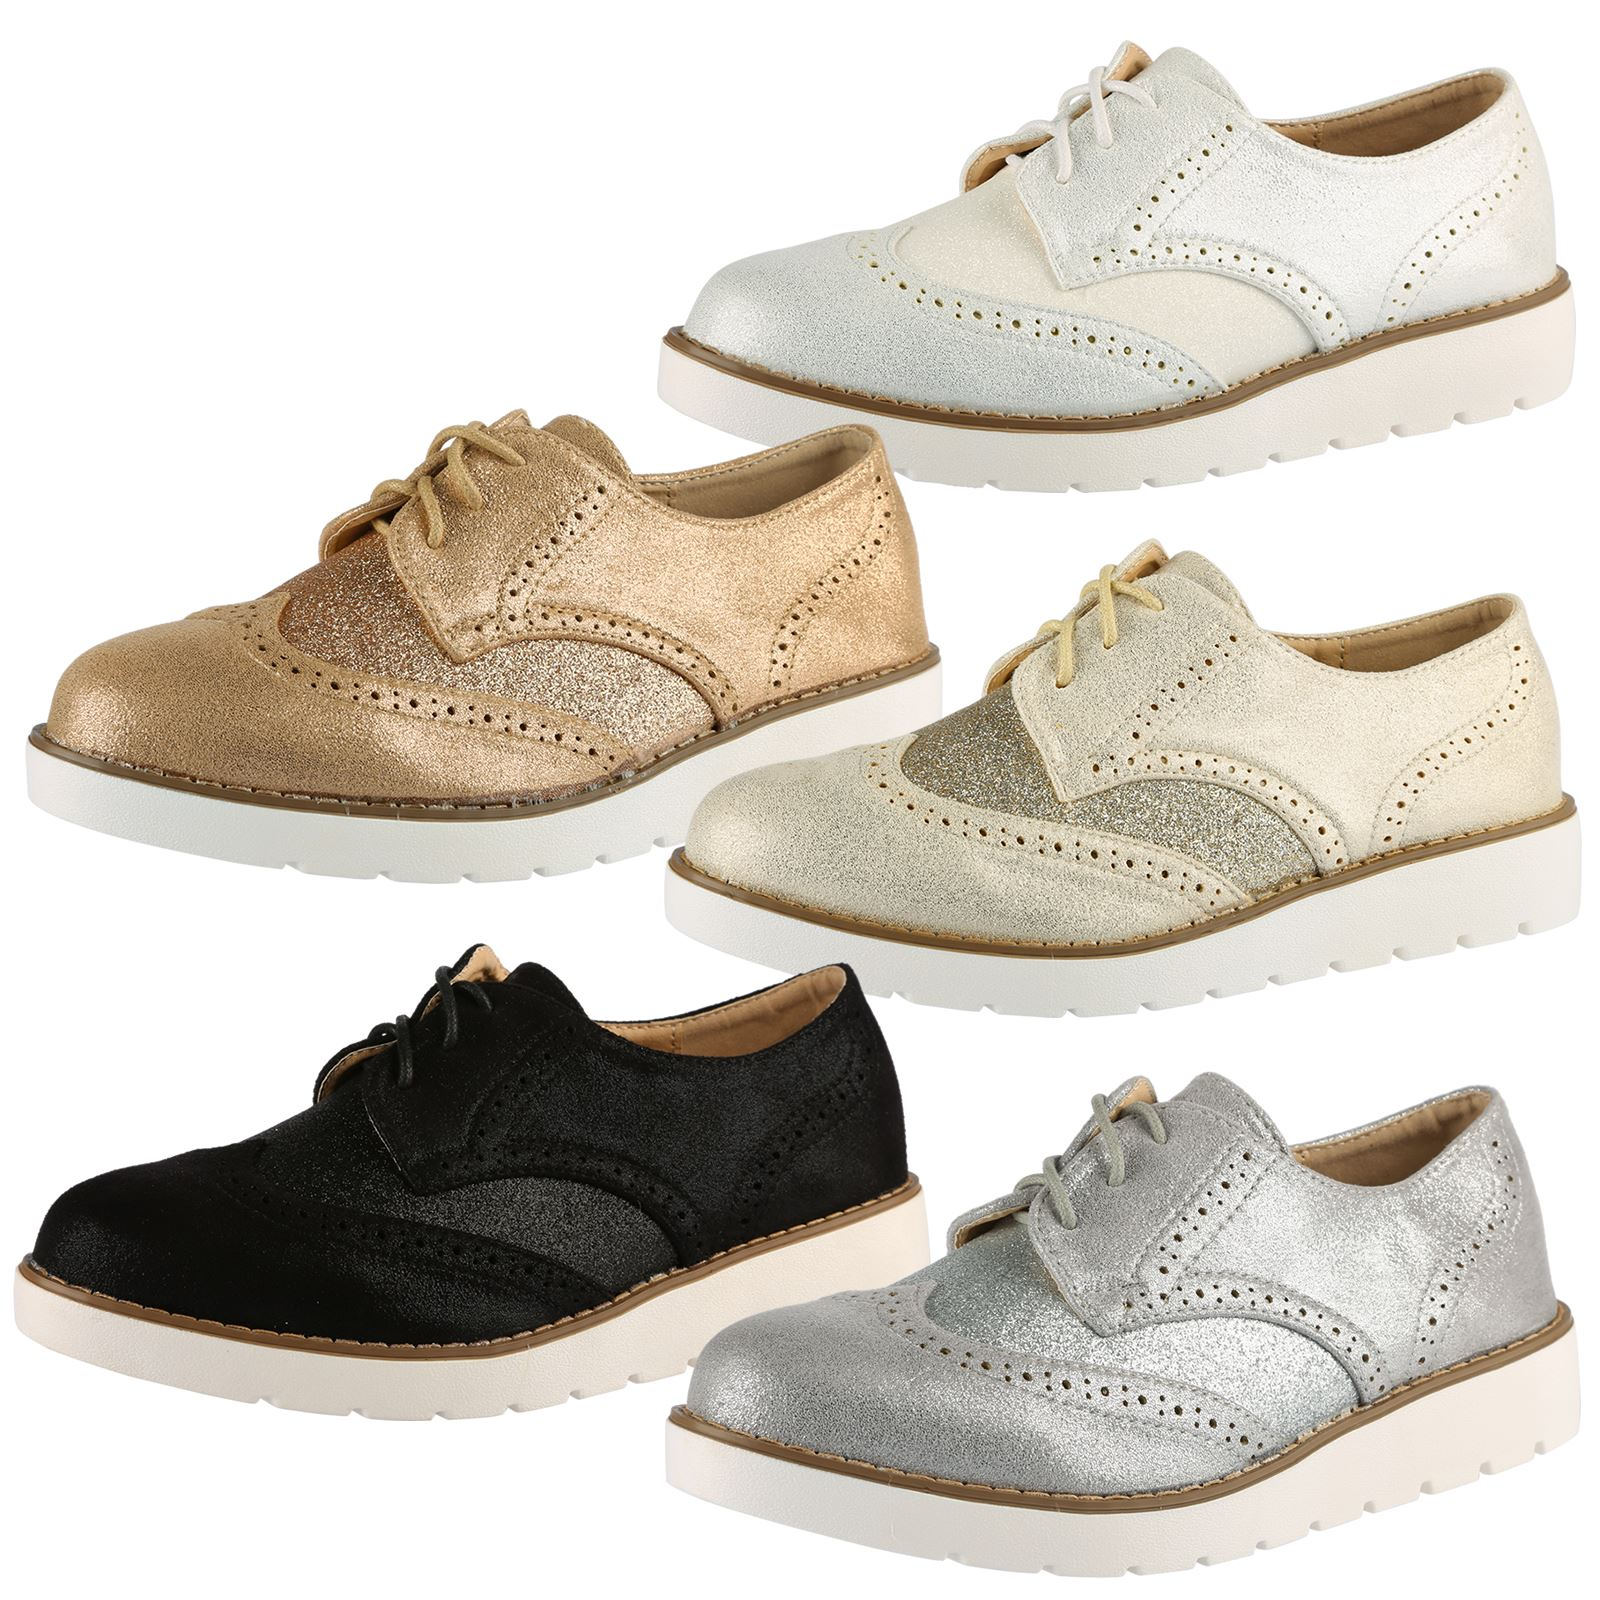 Women's Oxford & Lace-Up Shoes Menswear-style shoes are no less chic! Our women's oxfords, shoes and lace-up shoes include two-tones, metallics, wingtips, pumps and more for you to master the preppy style step by step.